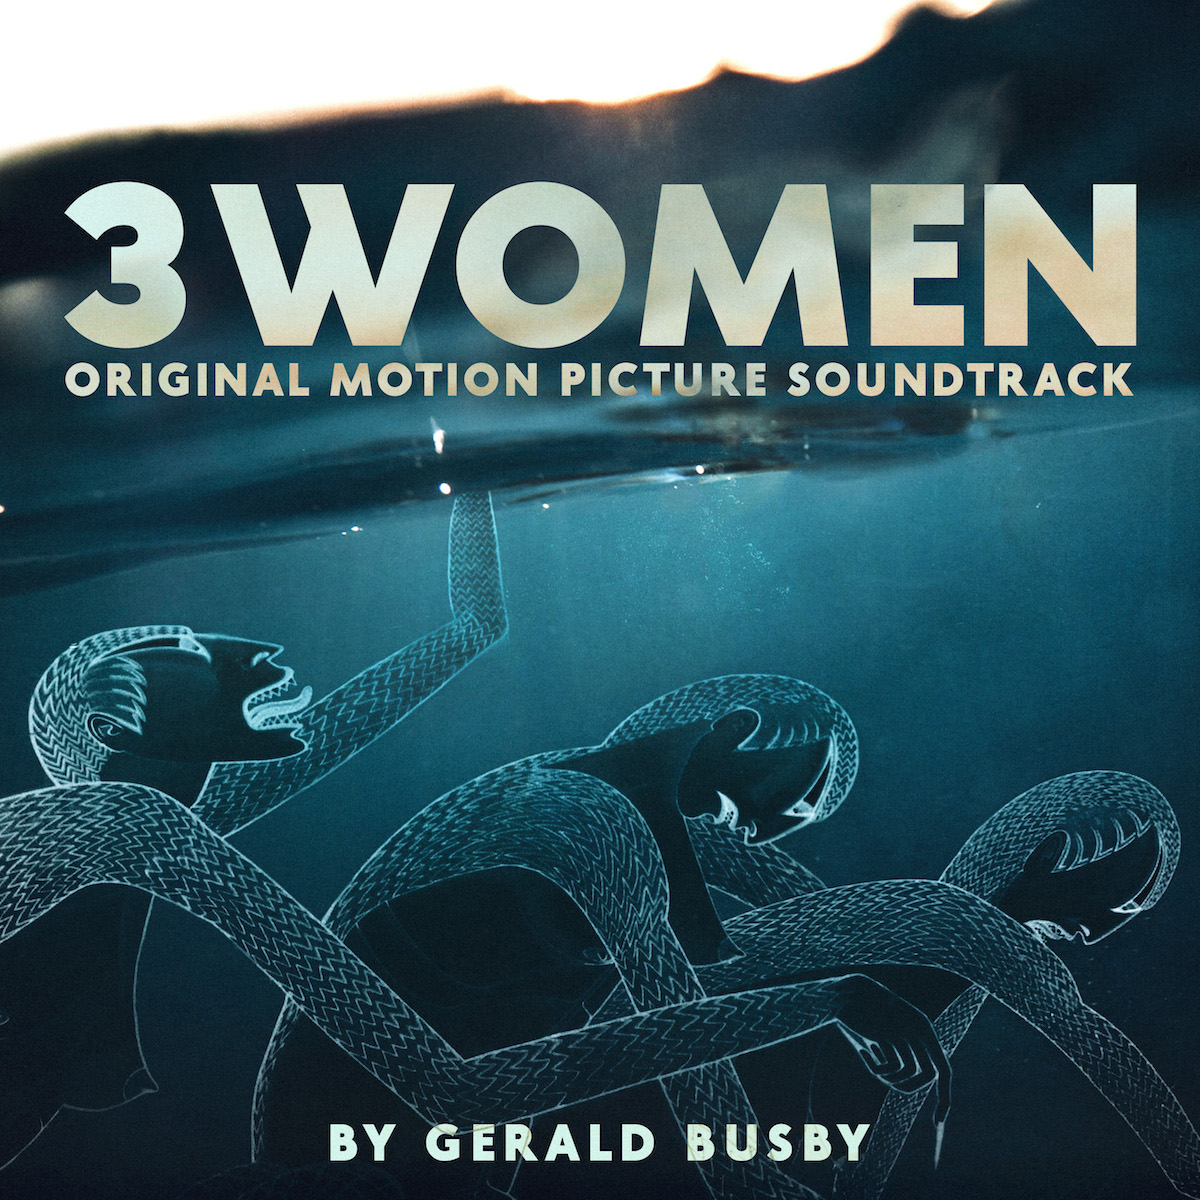 3 Women (Original Motion Picture Soundtrack) by Gerald Busby